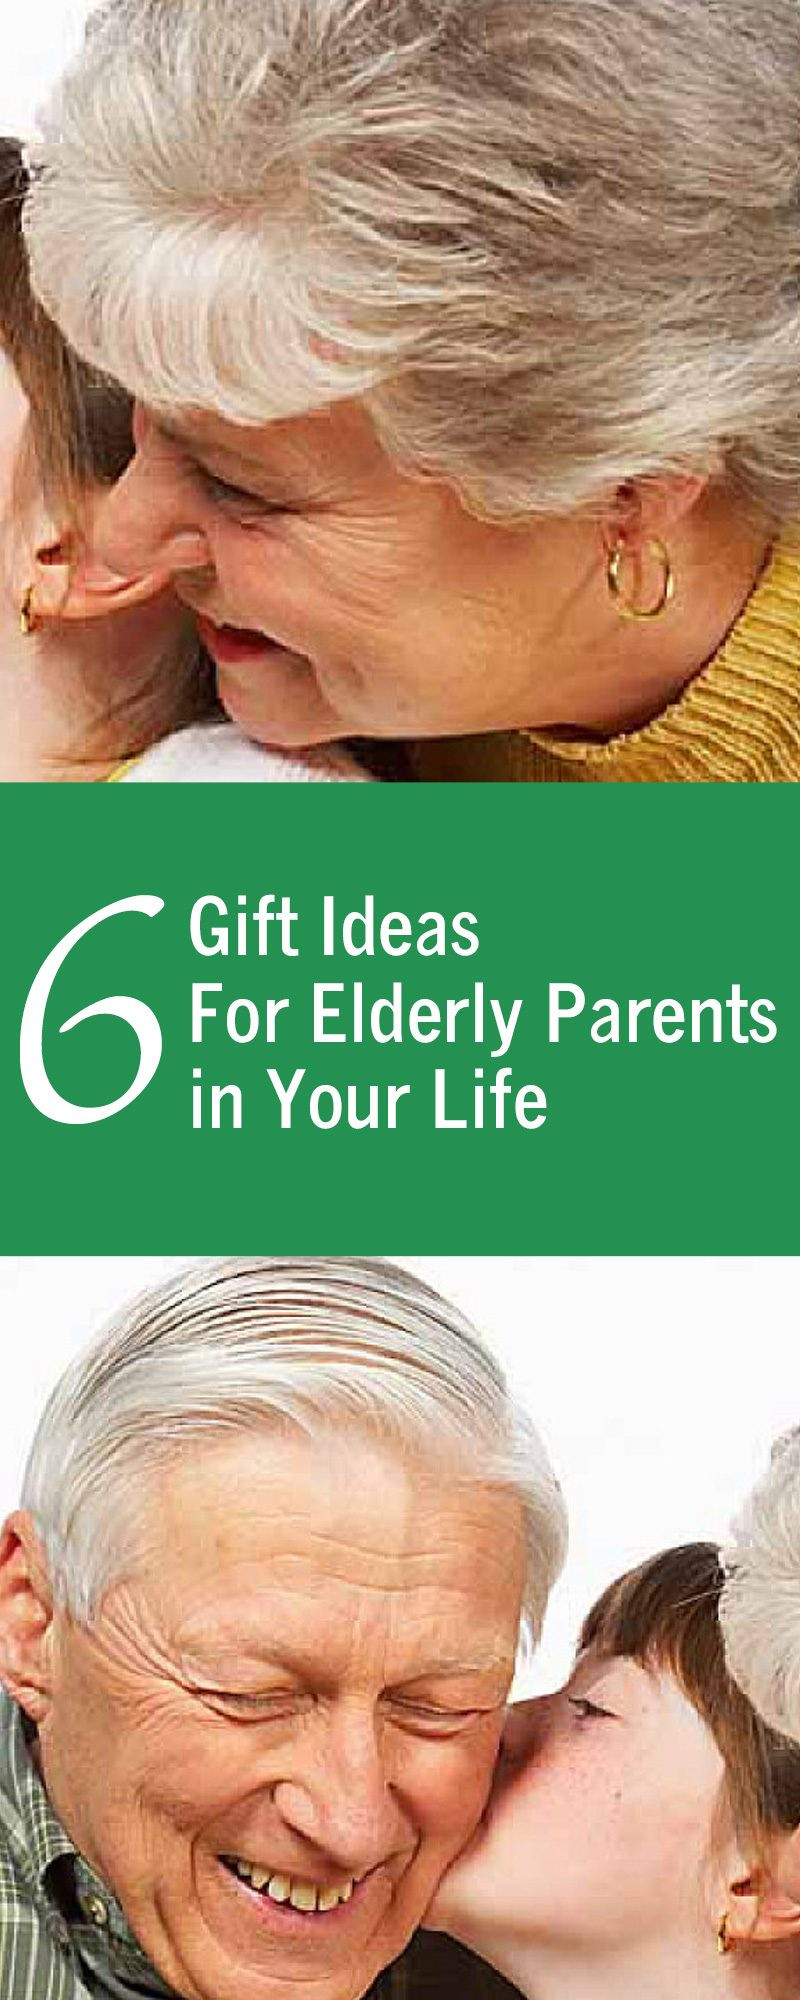 Best ideas about Gift Ideas For Elderly Parents . Save or Pin The Best Gift Ideas For Elderly Parents Now.